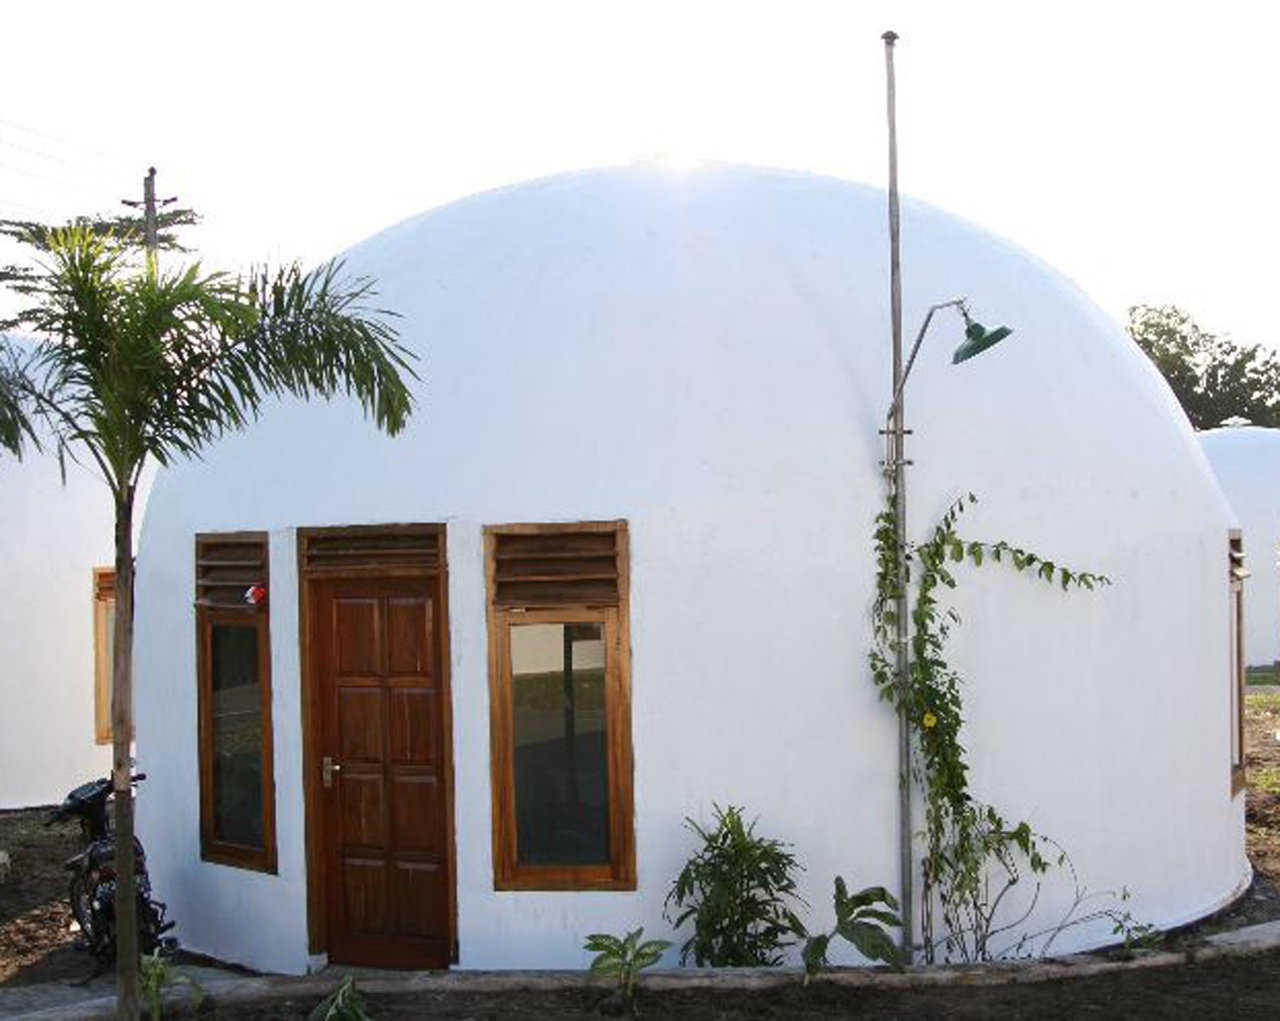 Monolithic EcoShell in Indonesia — Domes For The World trained native workers to build Monolithic EcoShell Domes which provide clean, low-energy use, fire- and disaster-resistant homes and public buildings in New Ngelepen, Indonesia.